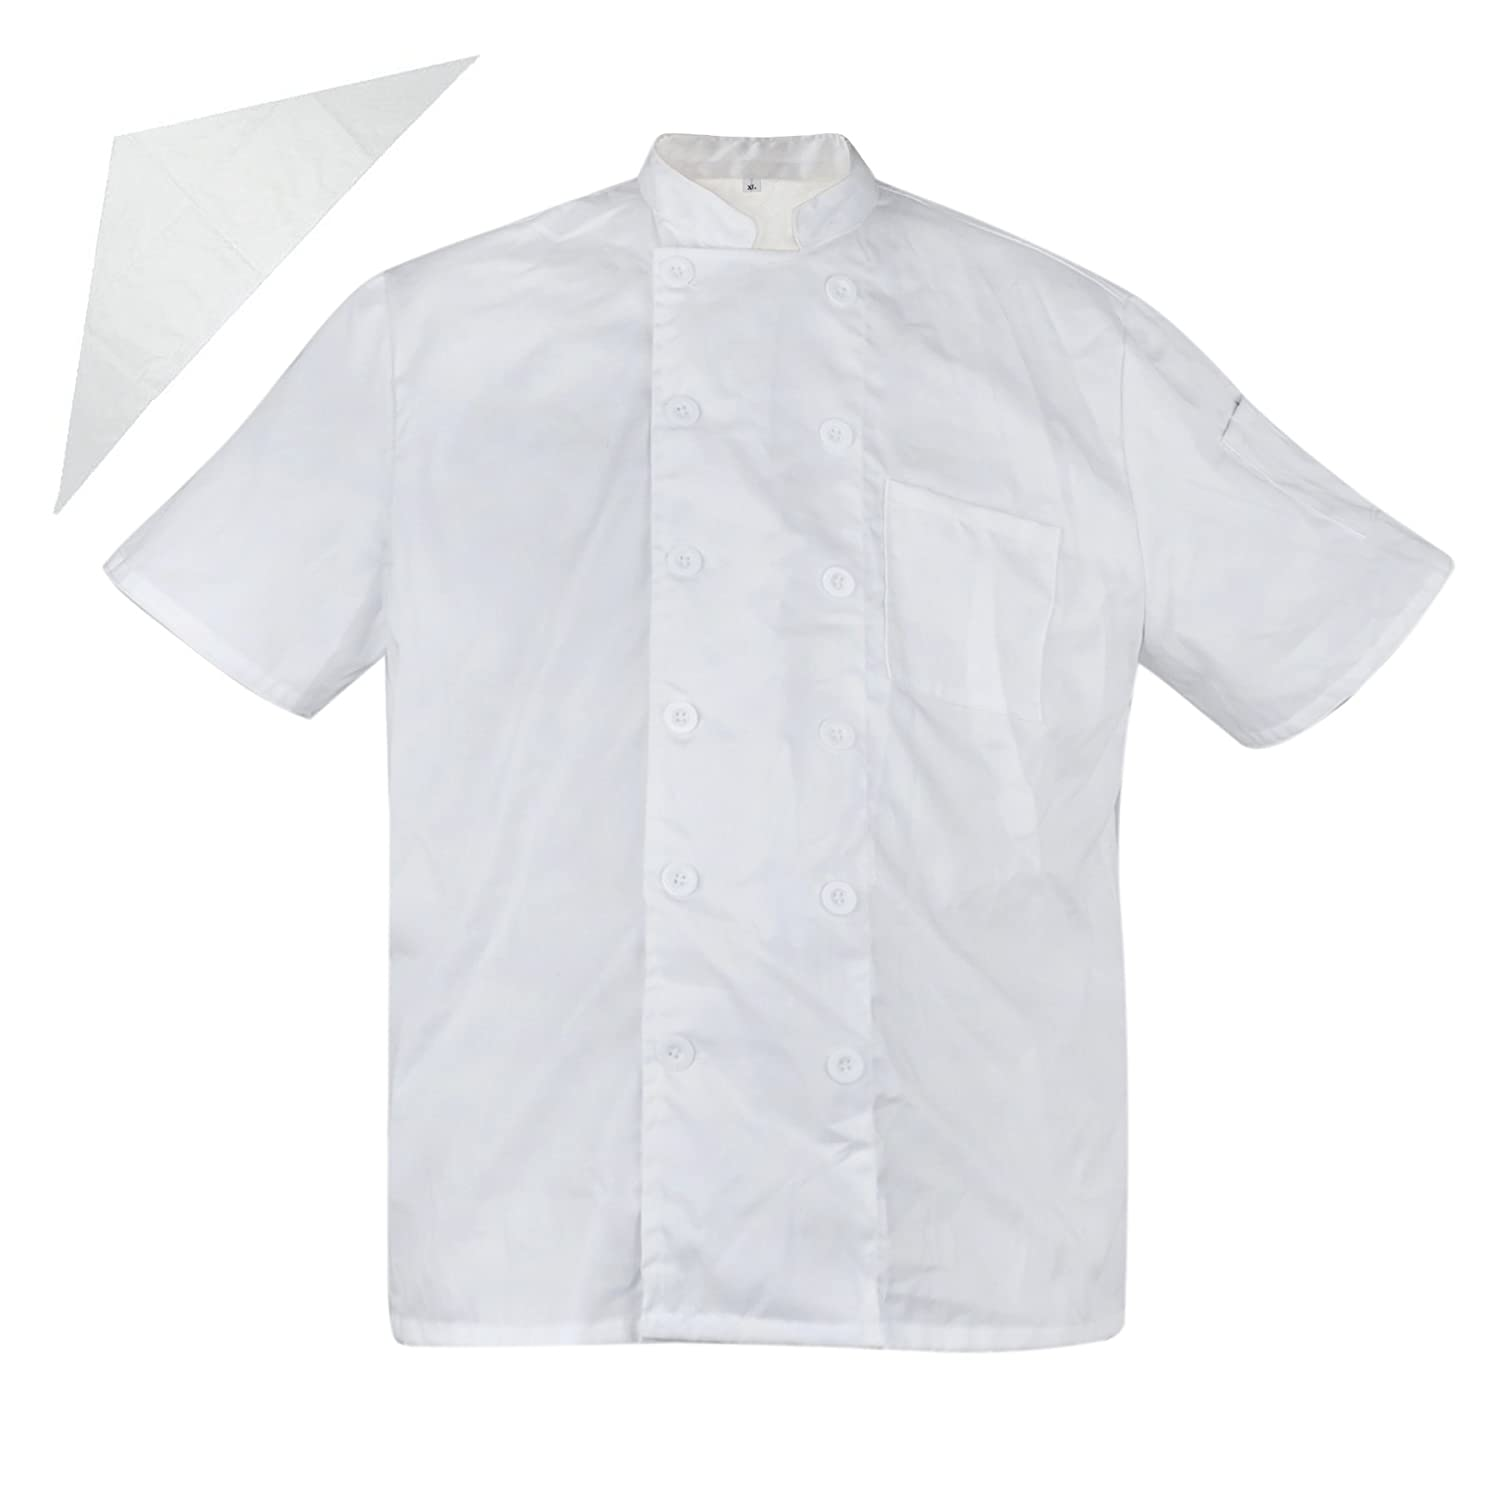 TopTie Unisex Short Sleeve Cooking Chef Coat Jacket & Neckerchief CHIX-DK61113